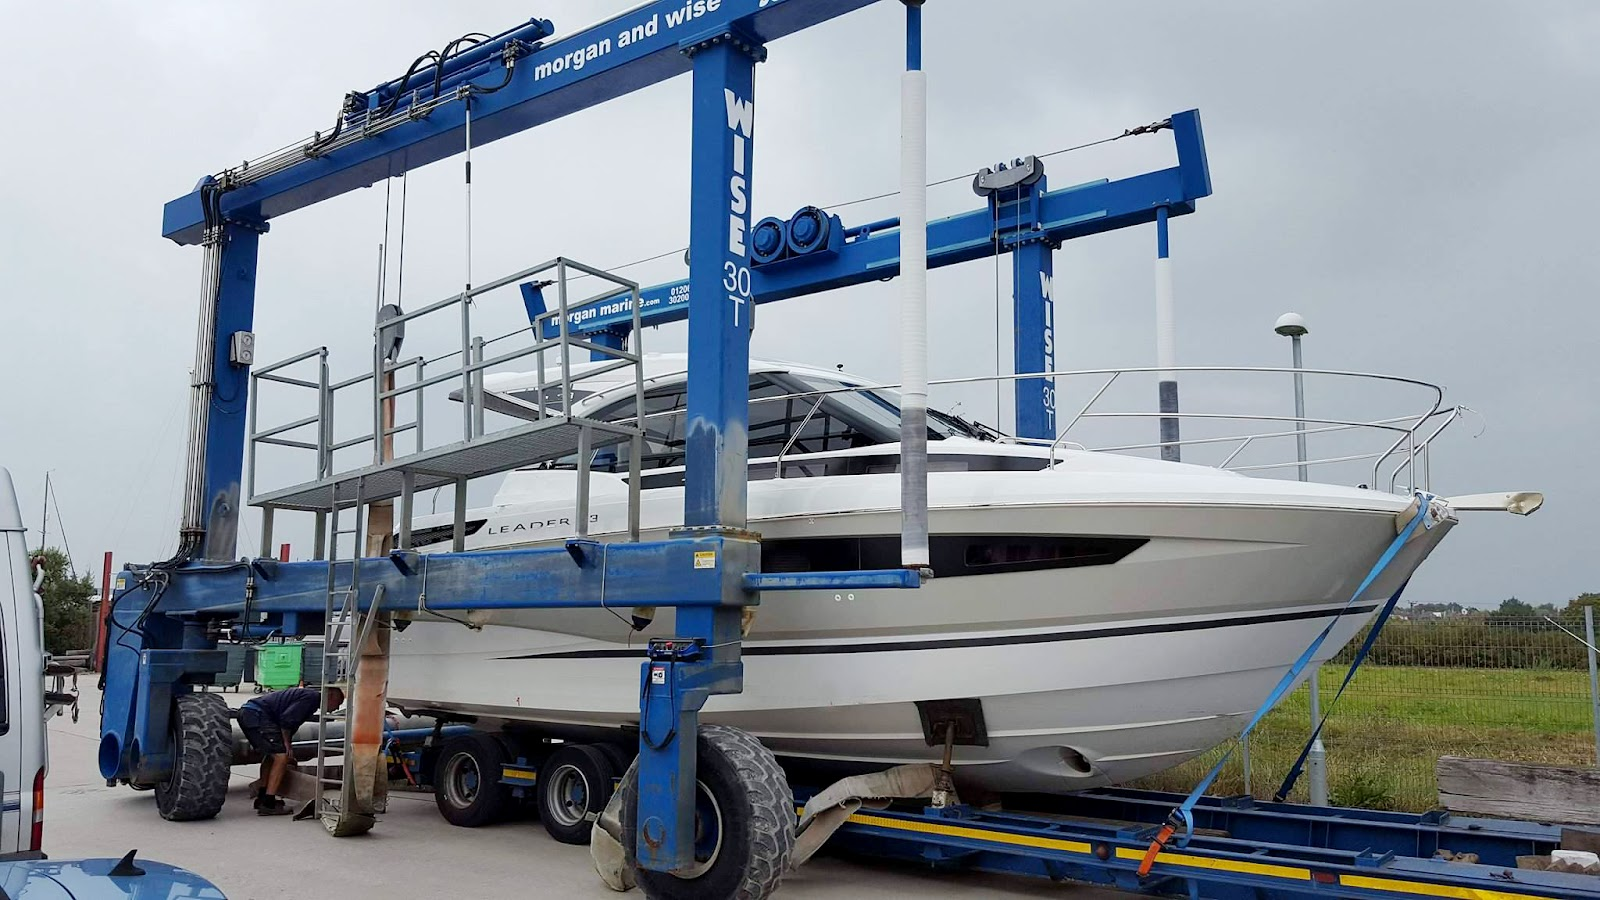 Boat maintenance lift